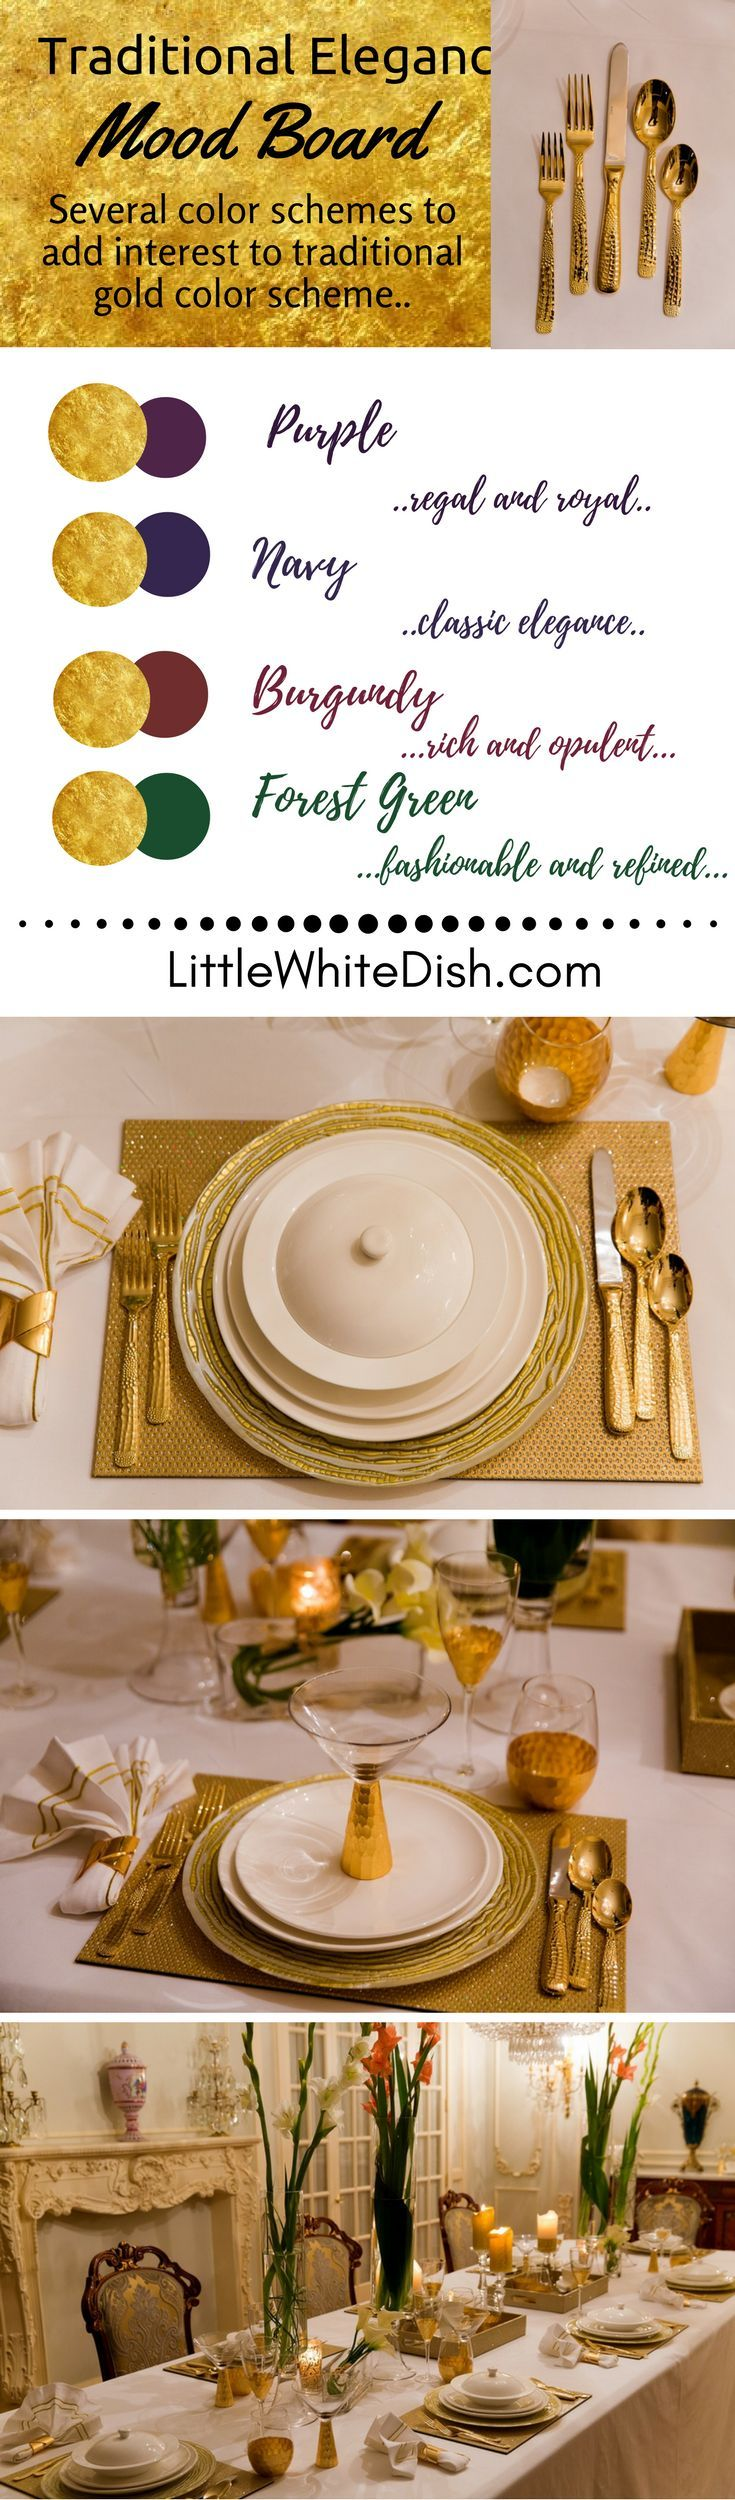 Looking for those perfect pieces to create that stunning table, and give you versatility? Here are those essential pieces to last forever! gold tablesetting, tablescape, ideas, dinnerware, traditional holiday table, chargers, placemats, glasses,